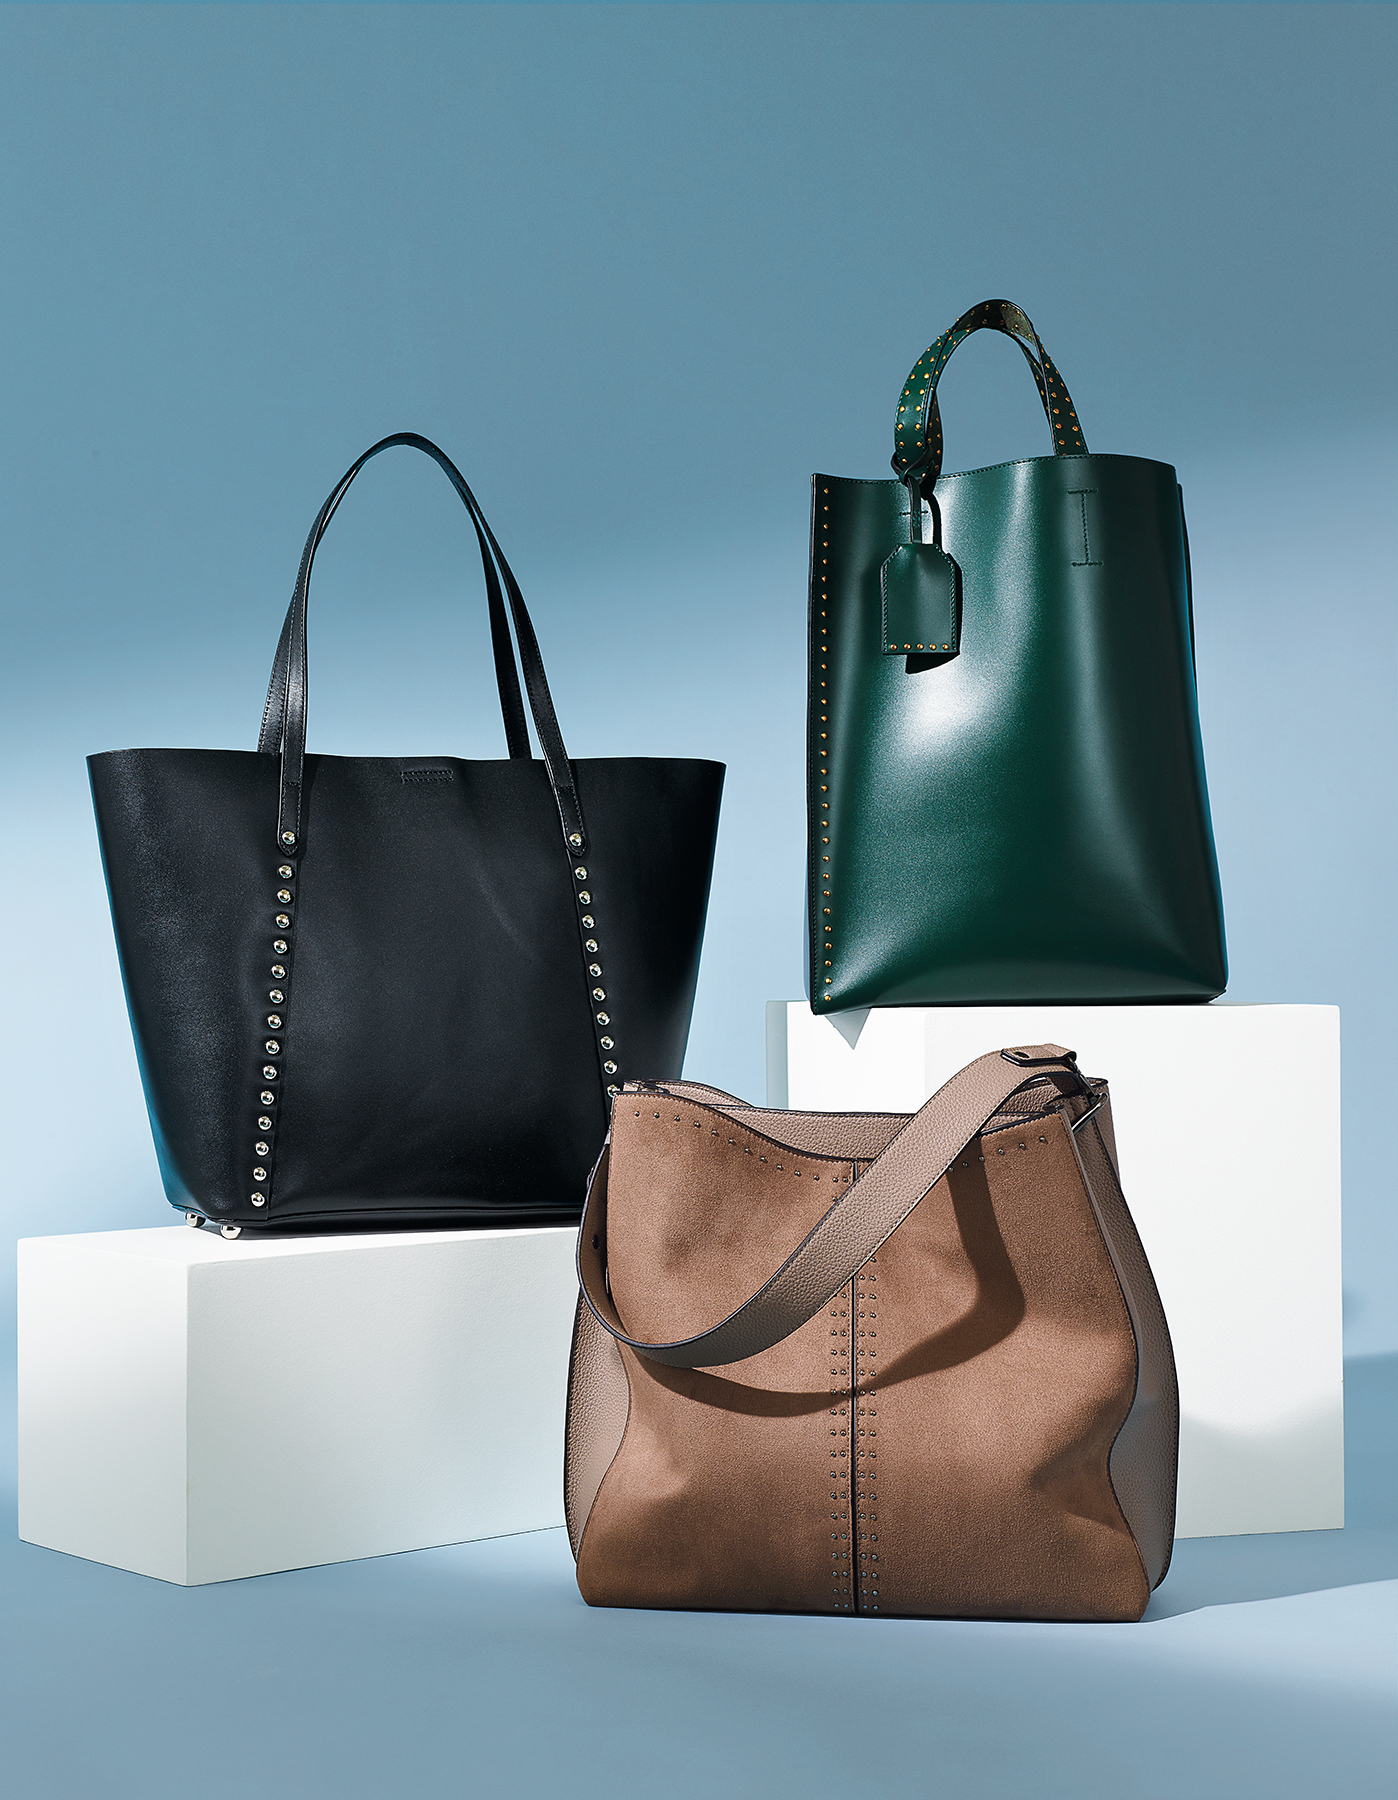 Oversize Totes